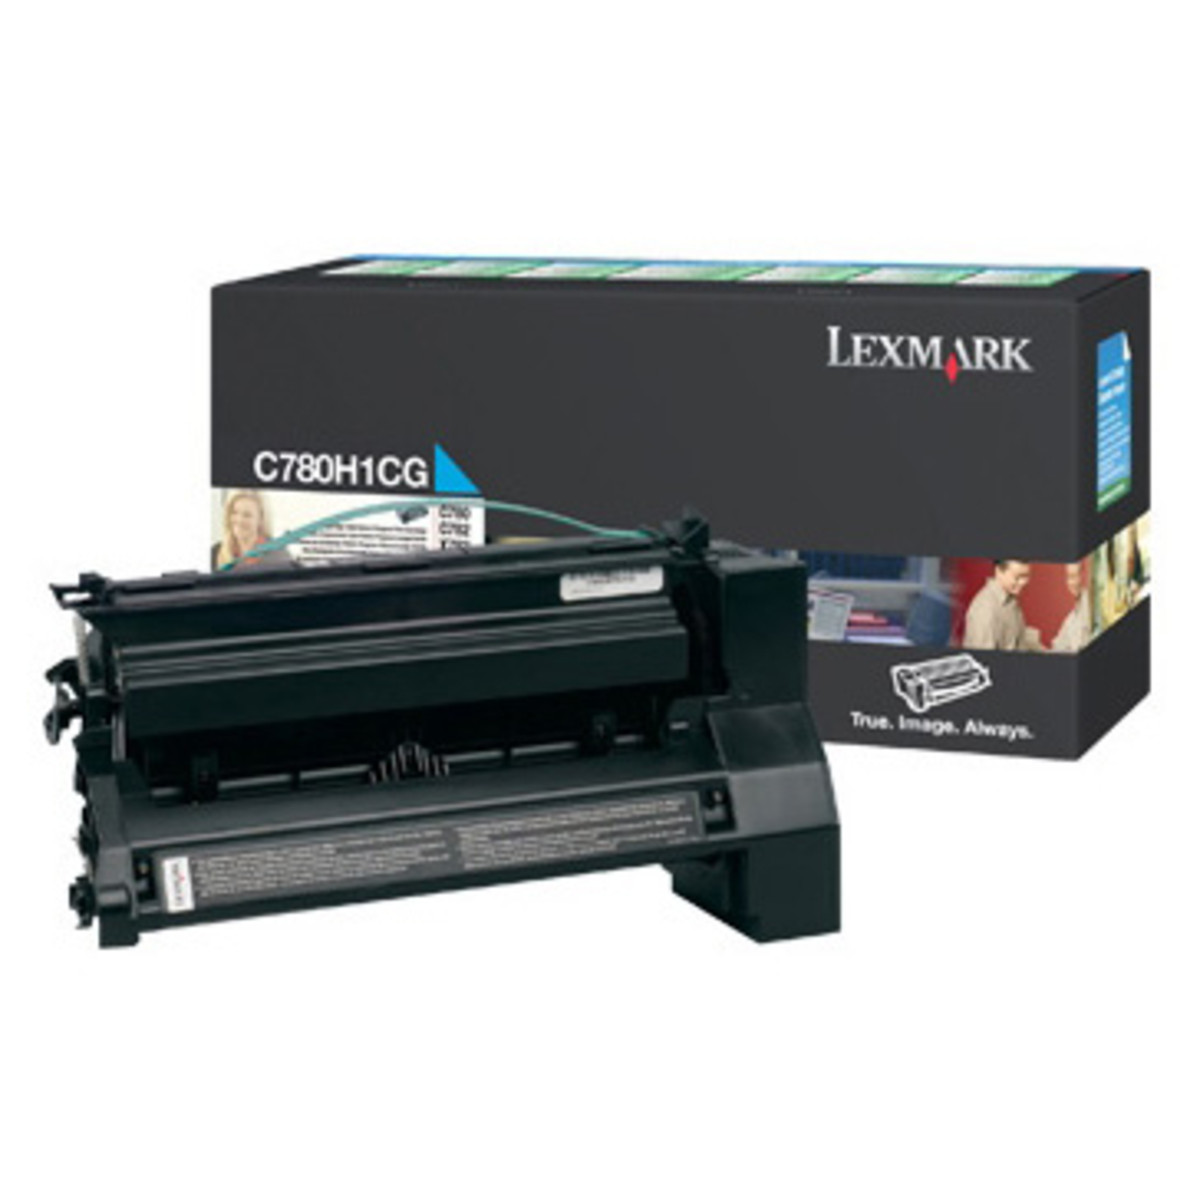 Lexmark C780H1CG Cyan Prebate Toner Cartridge- High Yield